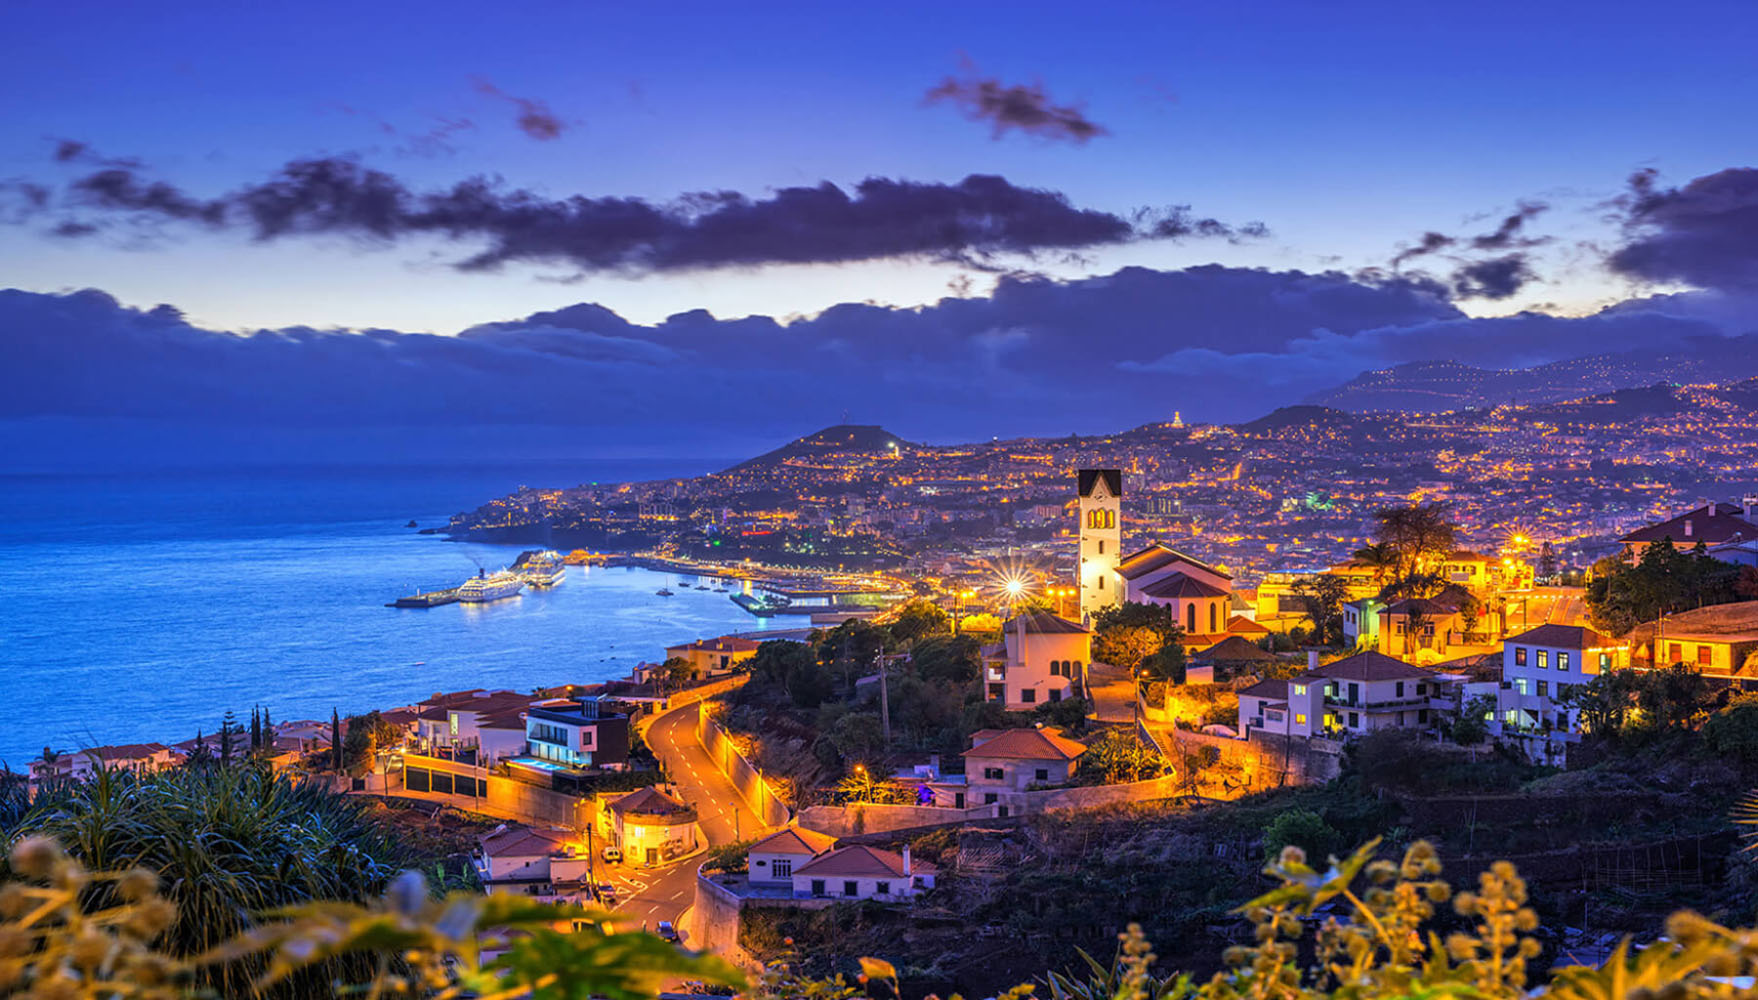 7-Night Canary Islands Intensive Voyage